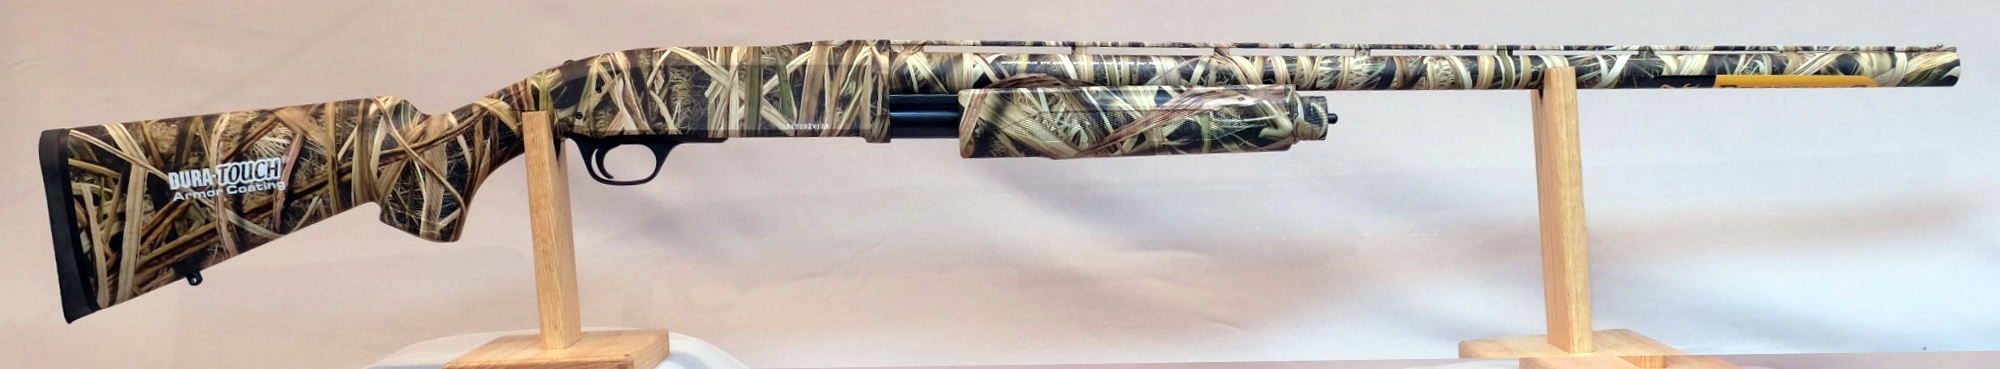 Browning-BPS-Mossy-Oak—12271204